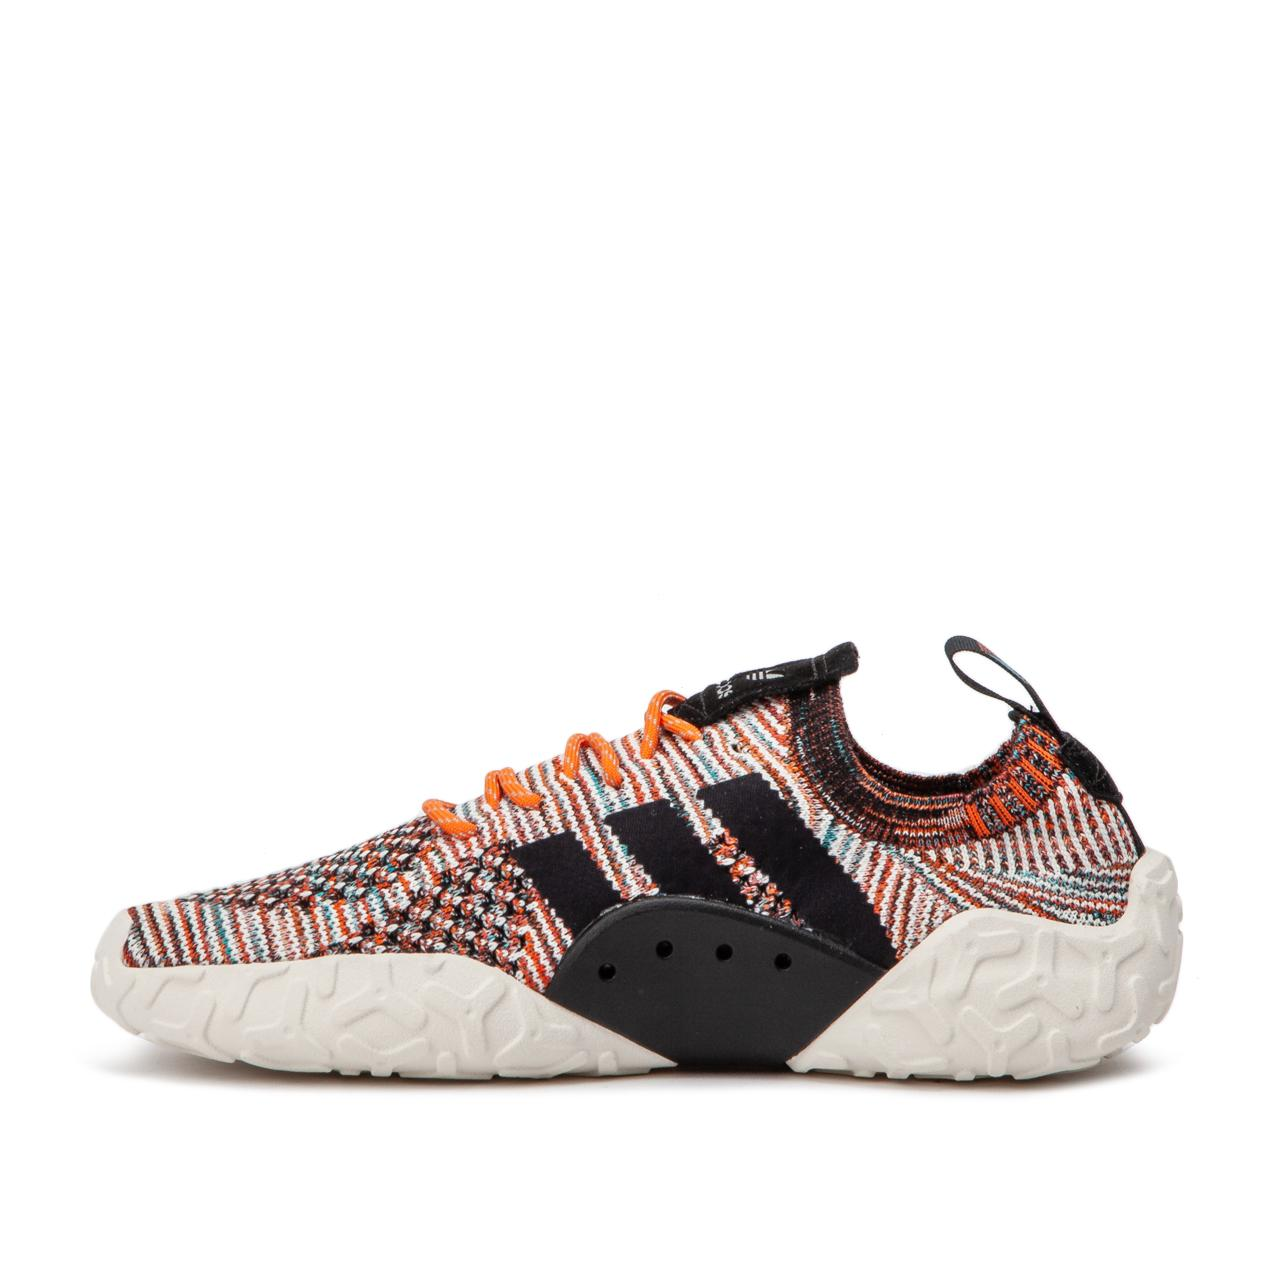 competitive price f7283 1f375 Adidas - Orange Atric F22 Primeknit for Men - Lyst. View fullscreen